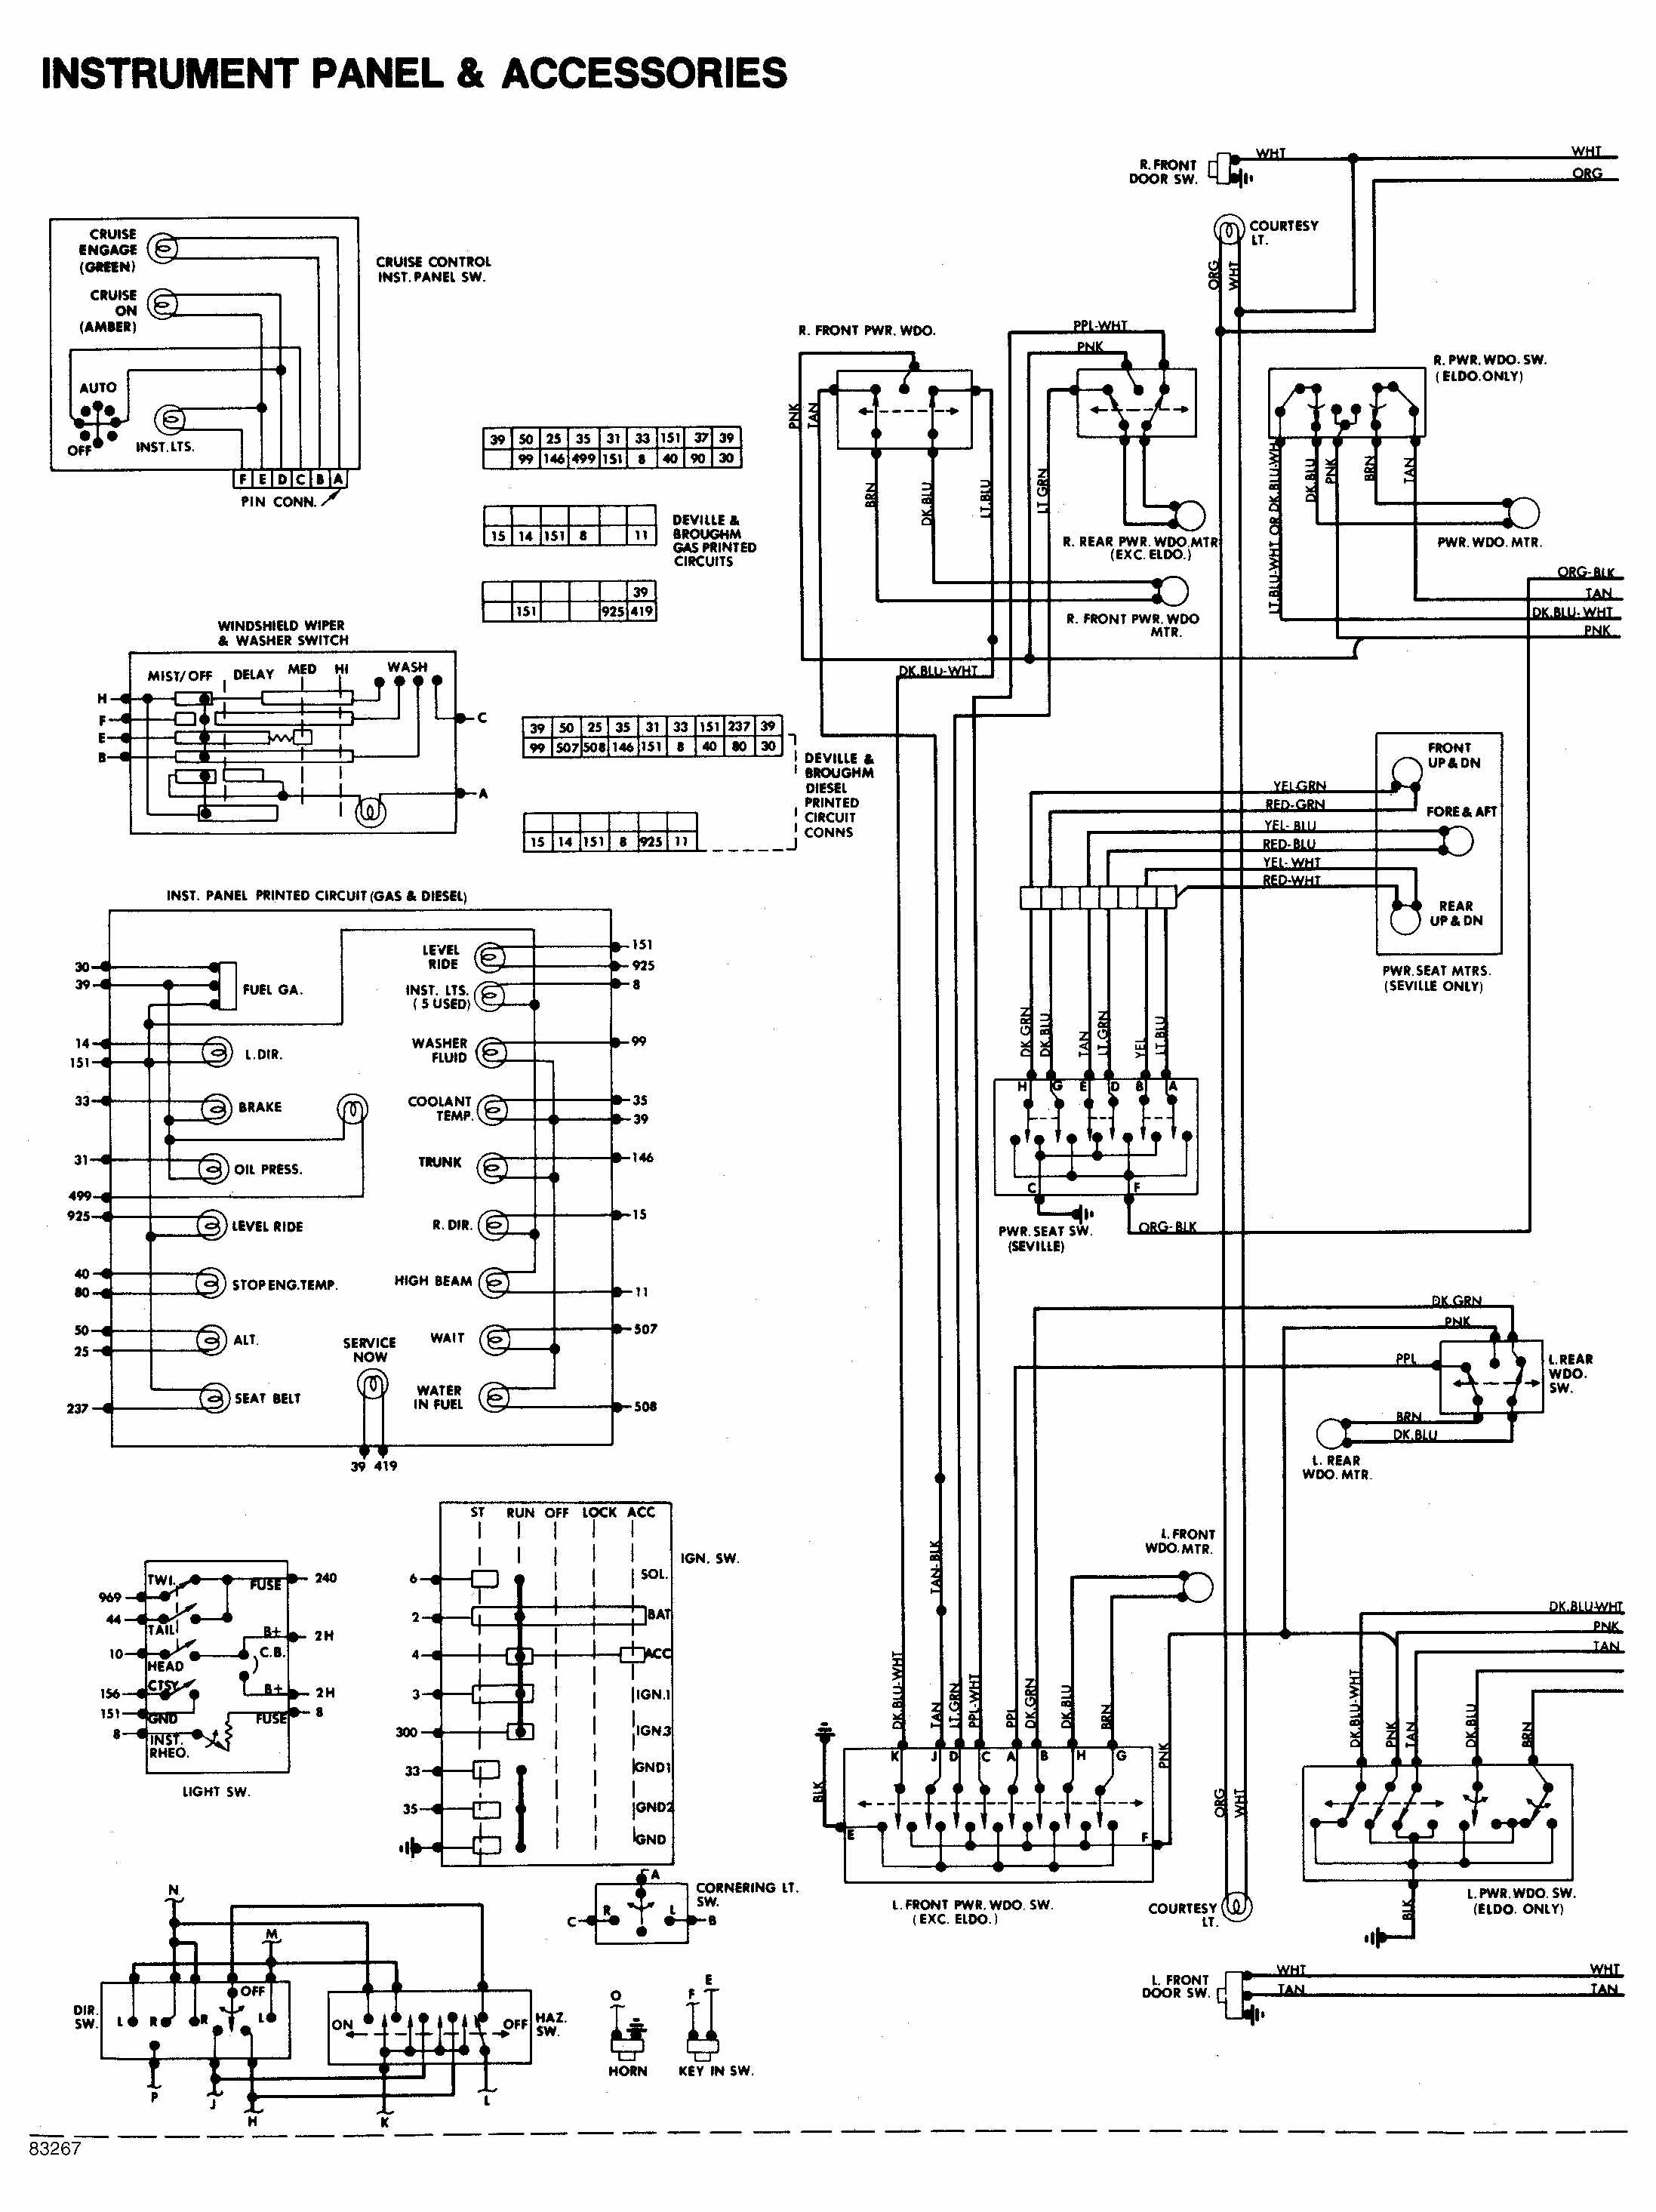 instrument panel and accessories wiring diagram of 1984 cadillac deville cadillac wiring harness ram truck wiring harness \u2022 wiring diagrams 70 Cadillac Eldorado at bakdesigns.co